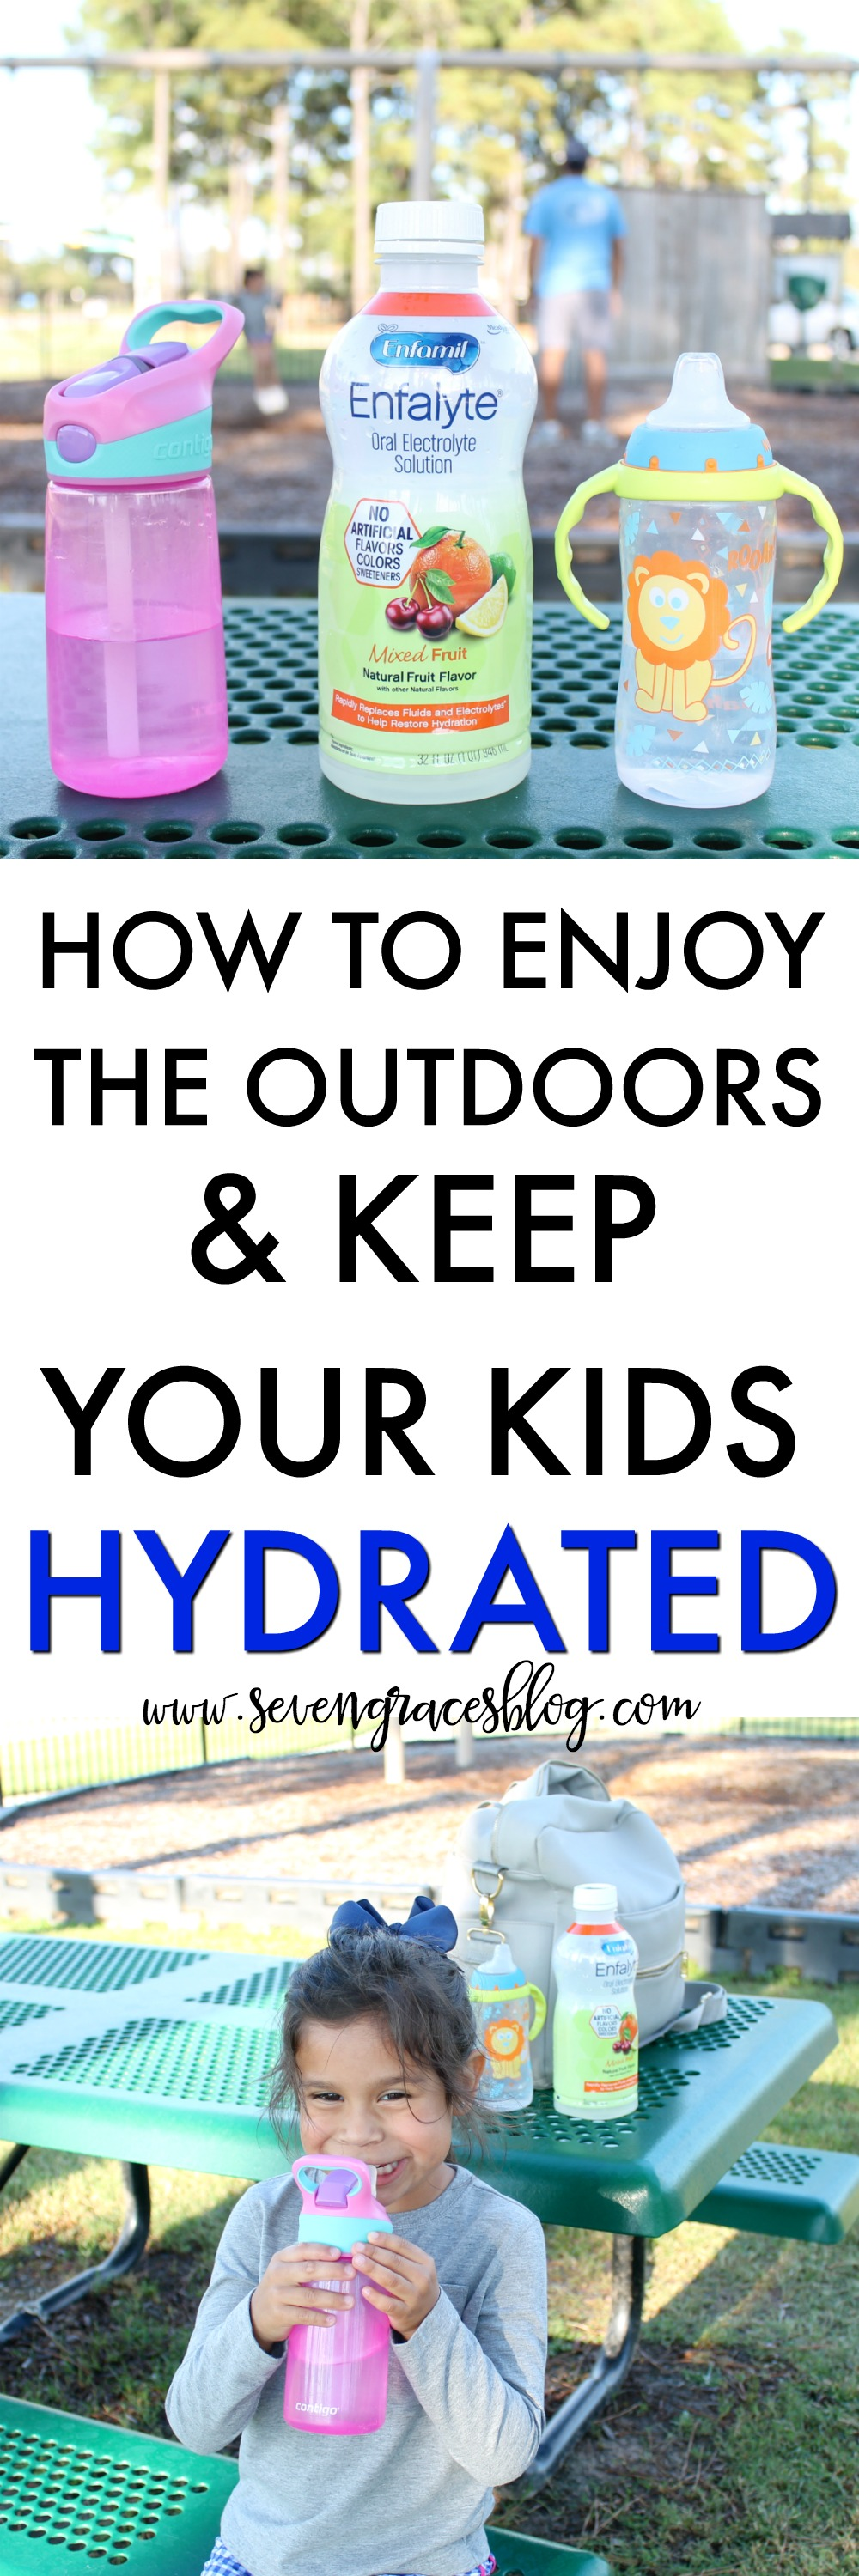 How to enjoy the outdoors and keep your kids hydrated: A great resource for moms! #enfalyte #ad